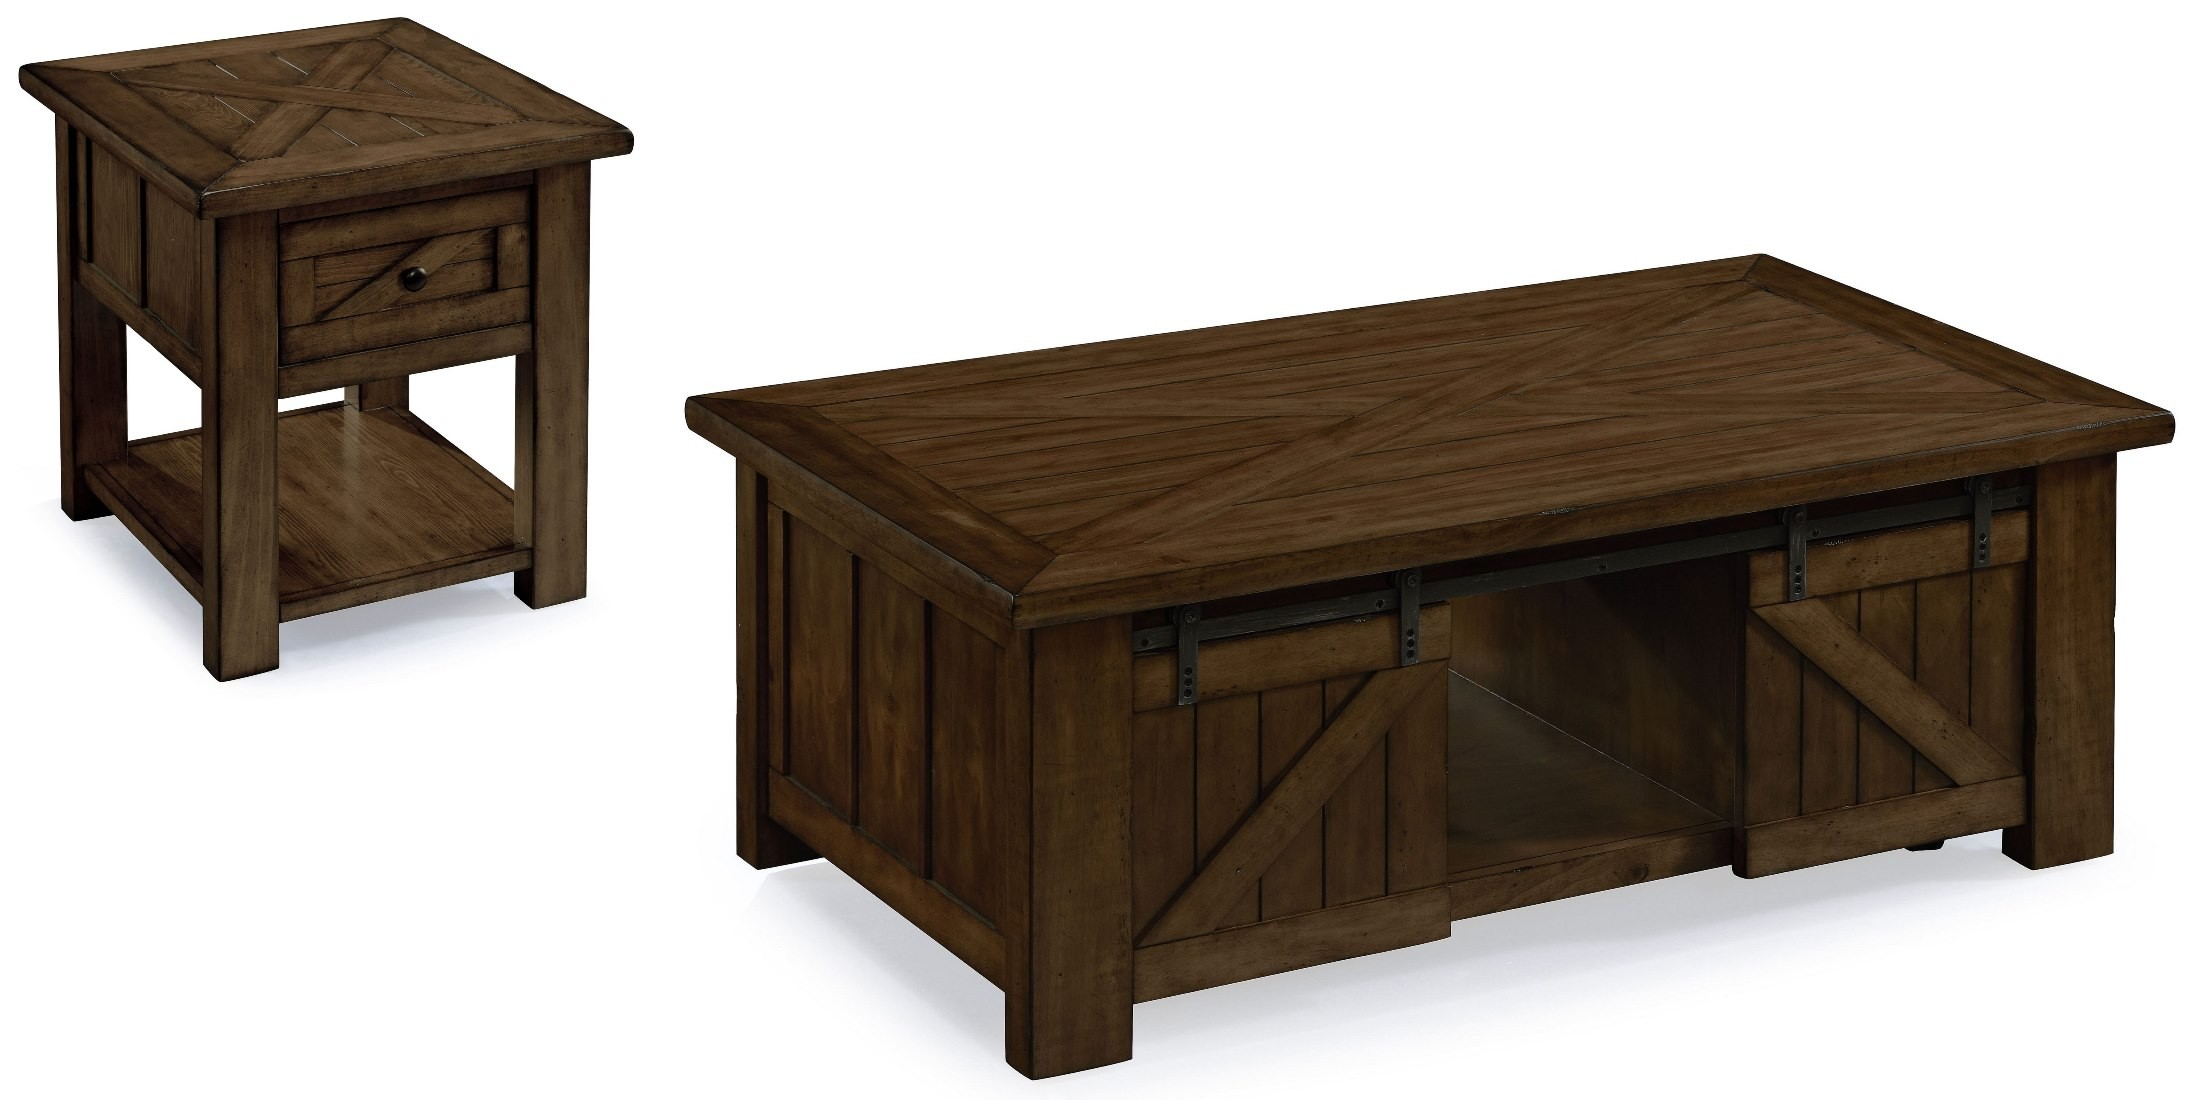 Fraser rustic pine wood occasional table set t3779 50 for Occasional tables